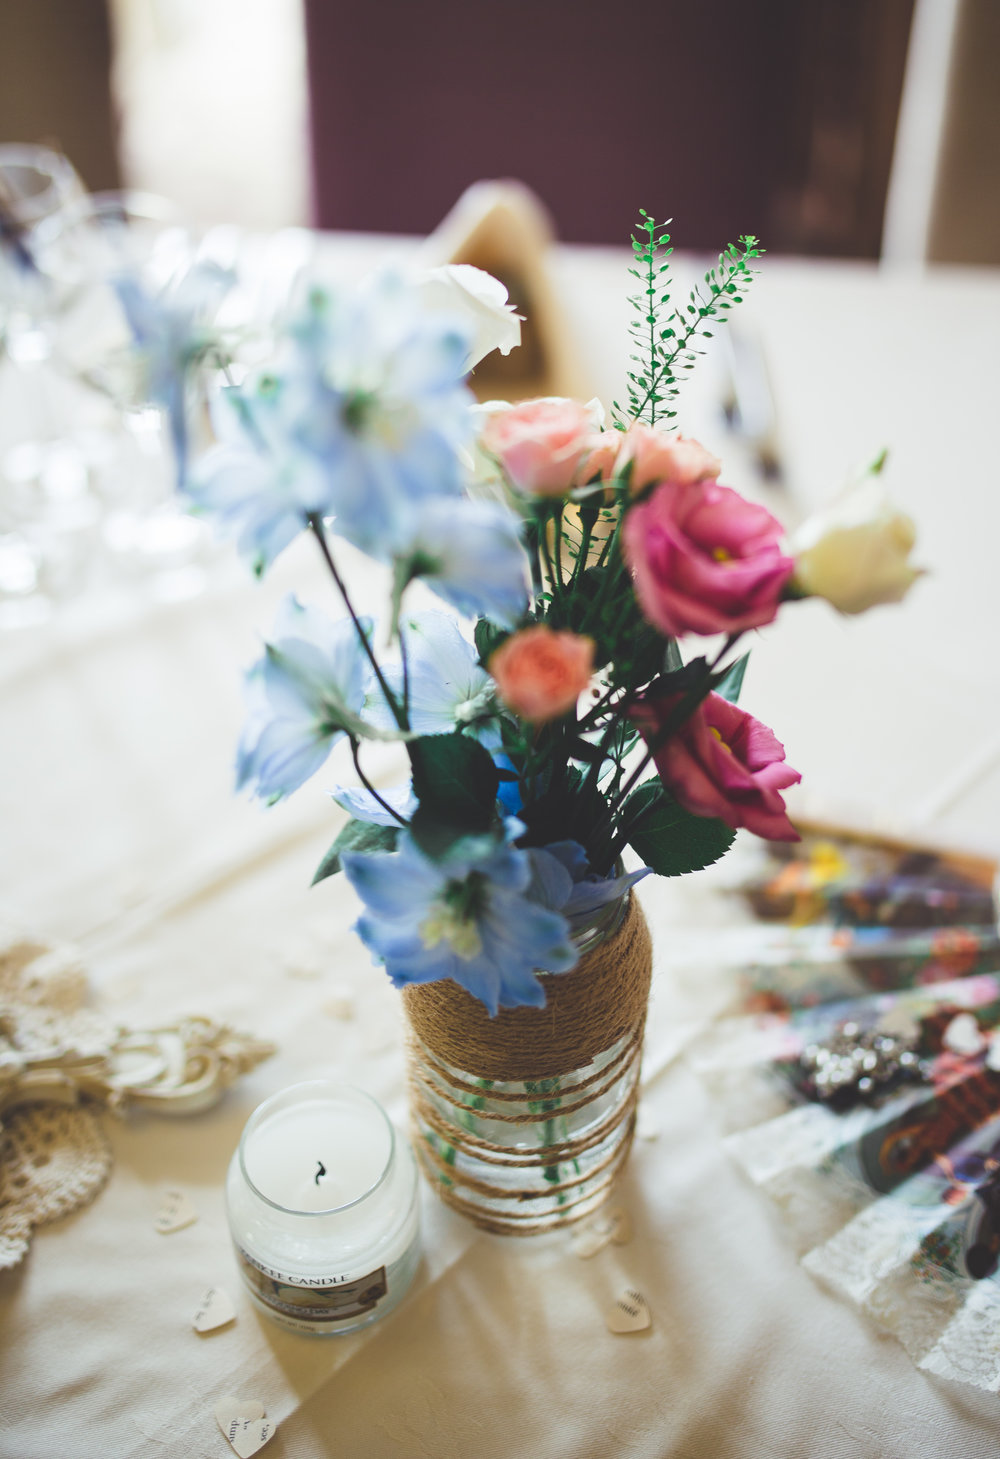 Table arrangements at the wedding venue of Inn on the Lake, lake district- Relaxed modern wedding photographer